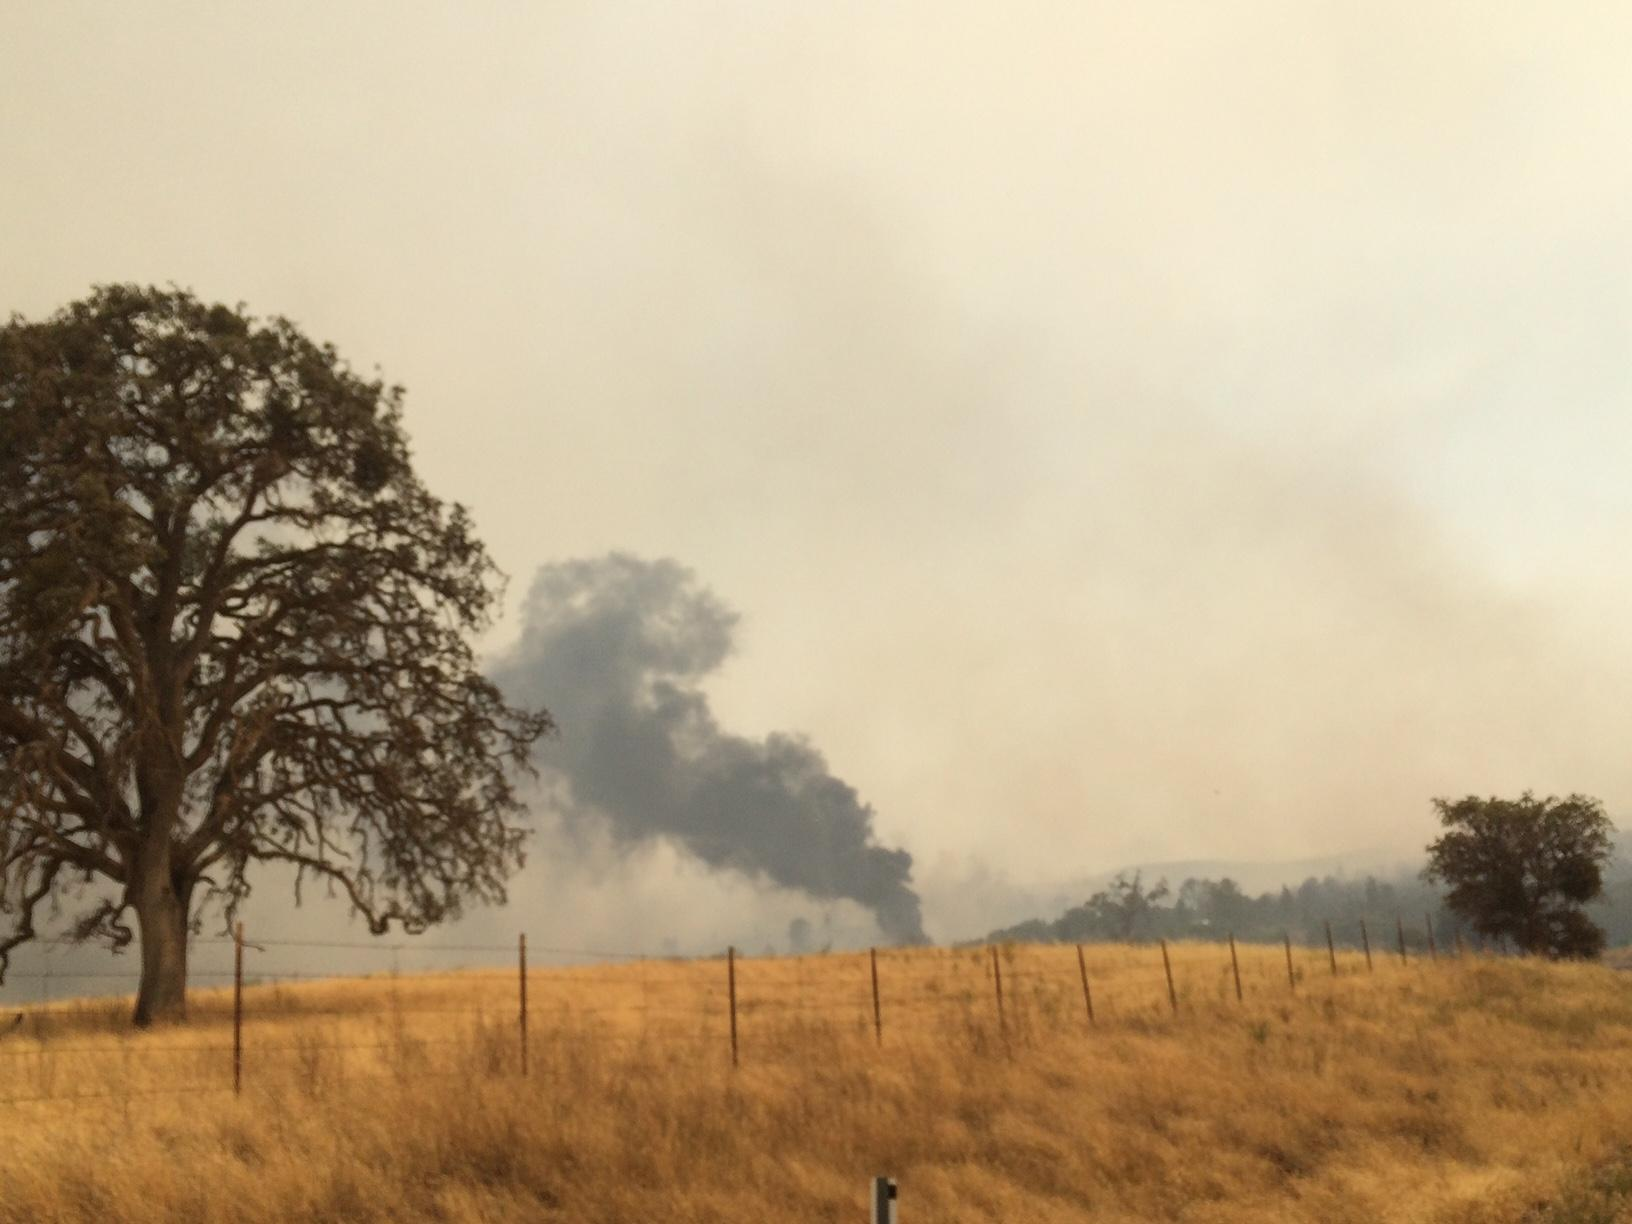 Detwiler Fire Near Yosemite Grows To 15500 Acres In Second Day